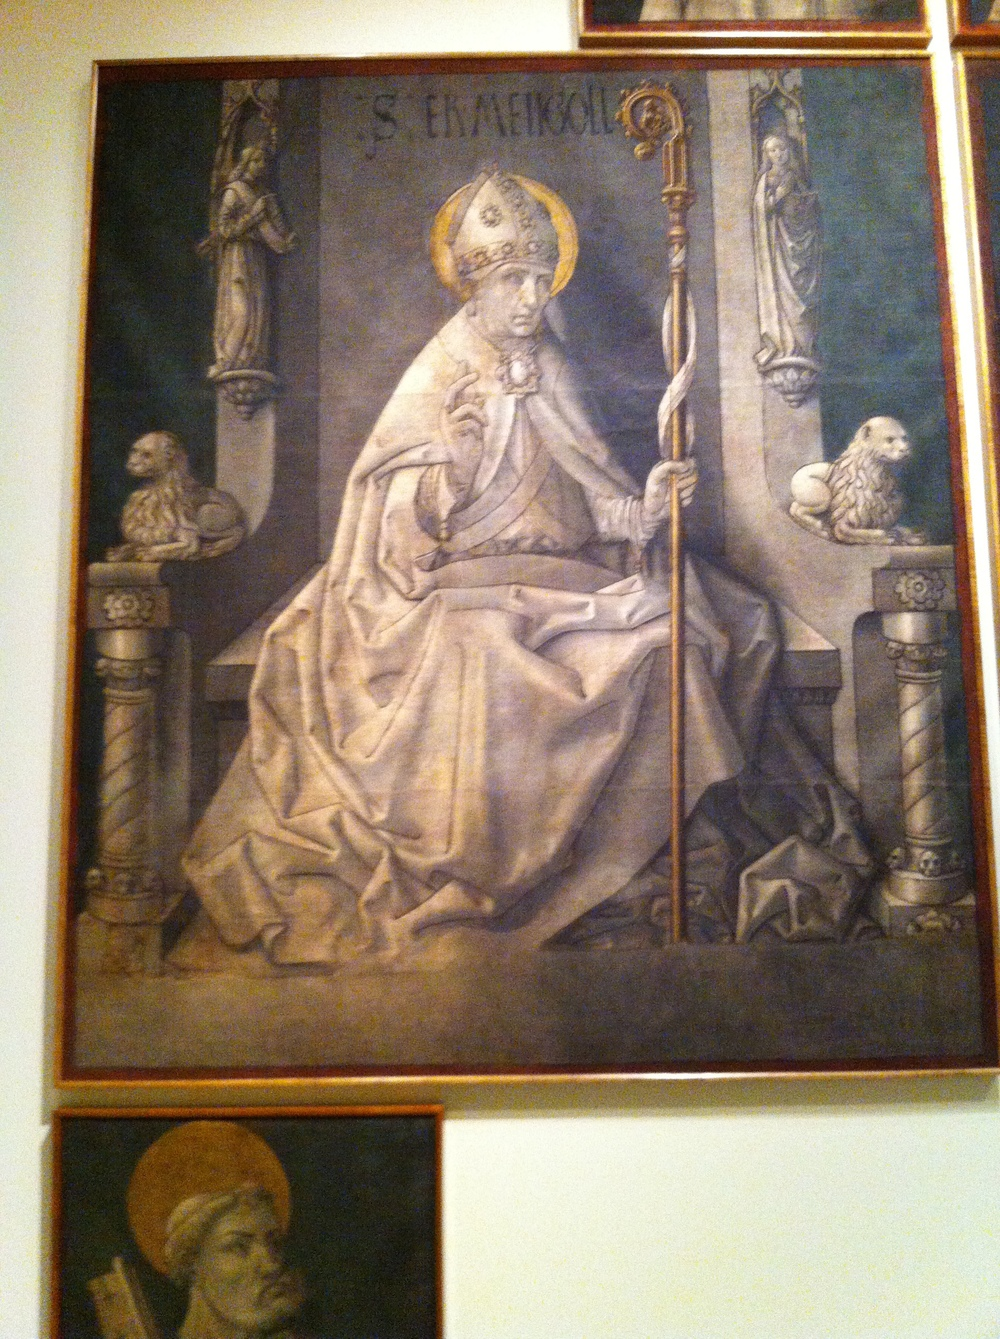 an interesting 15th century painting of a statue. It is outlined in black. It referenced a graphic novel to me